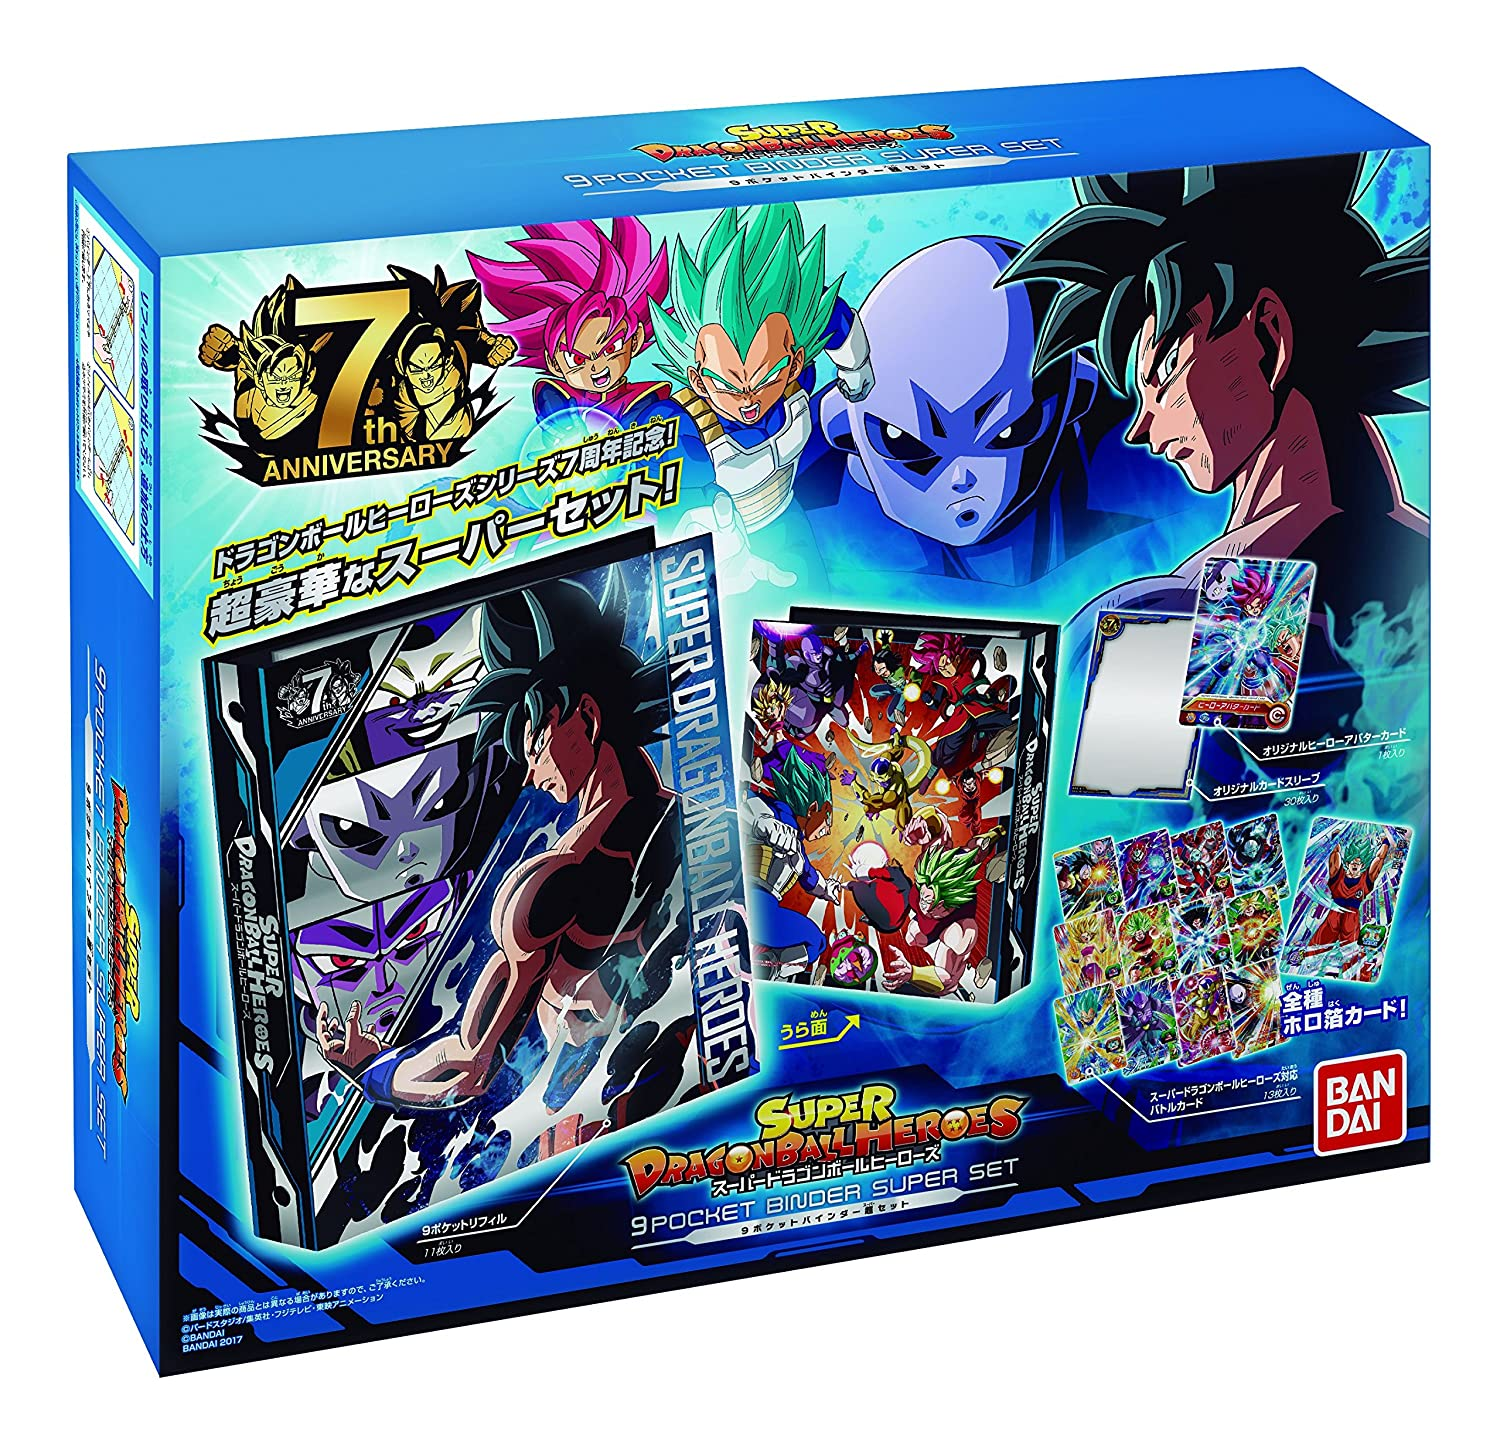 Super Dragon Ball Heroes 9 Pocket Binder Set: Amazon.es ...